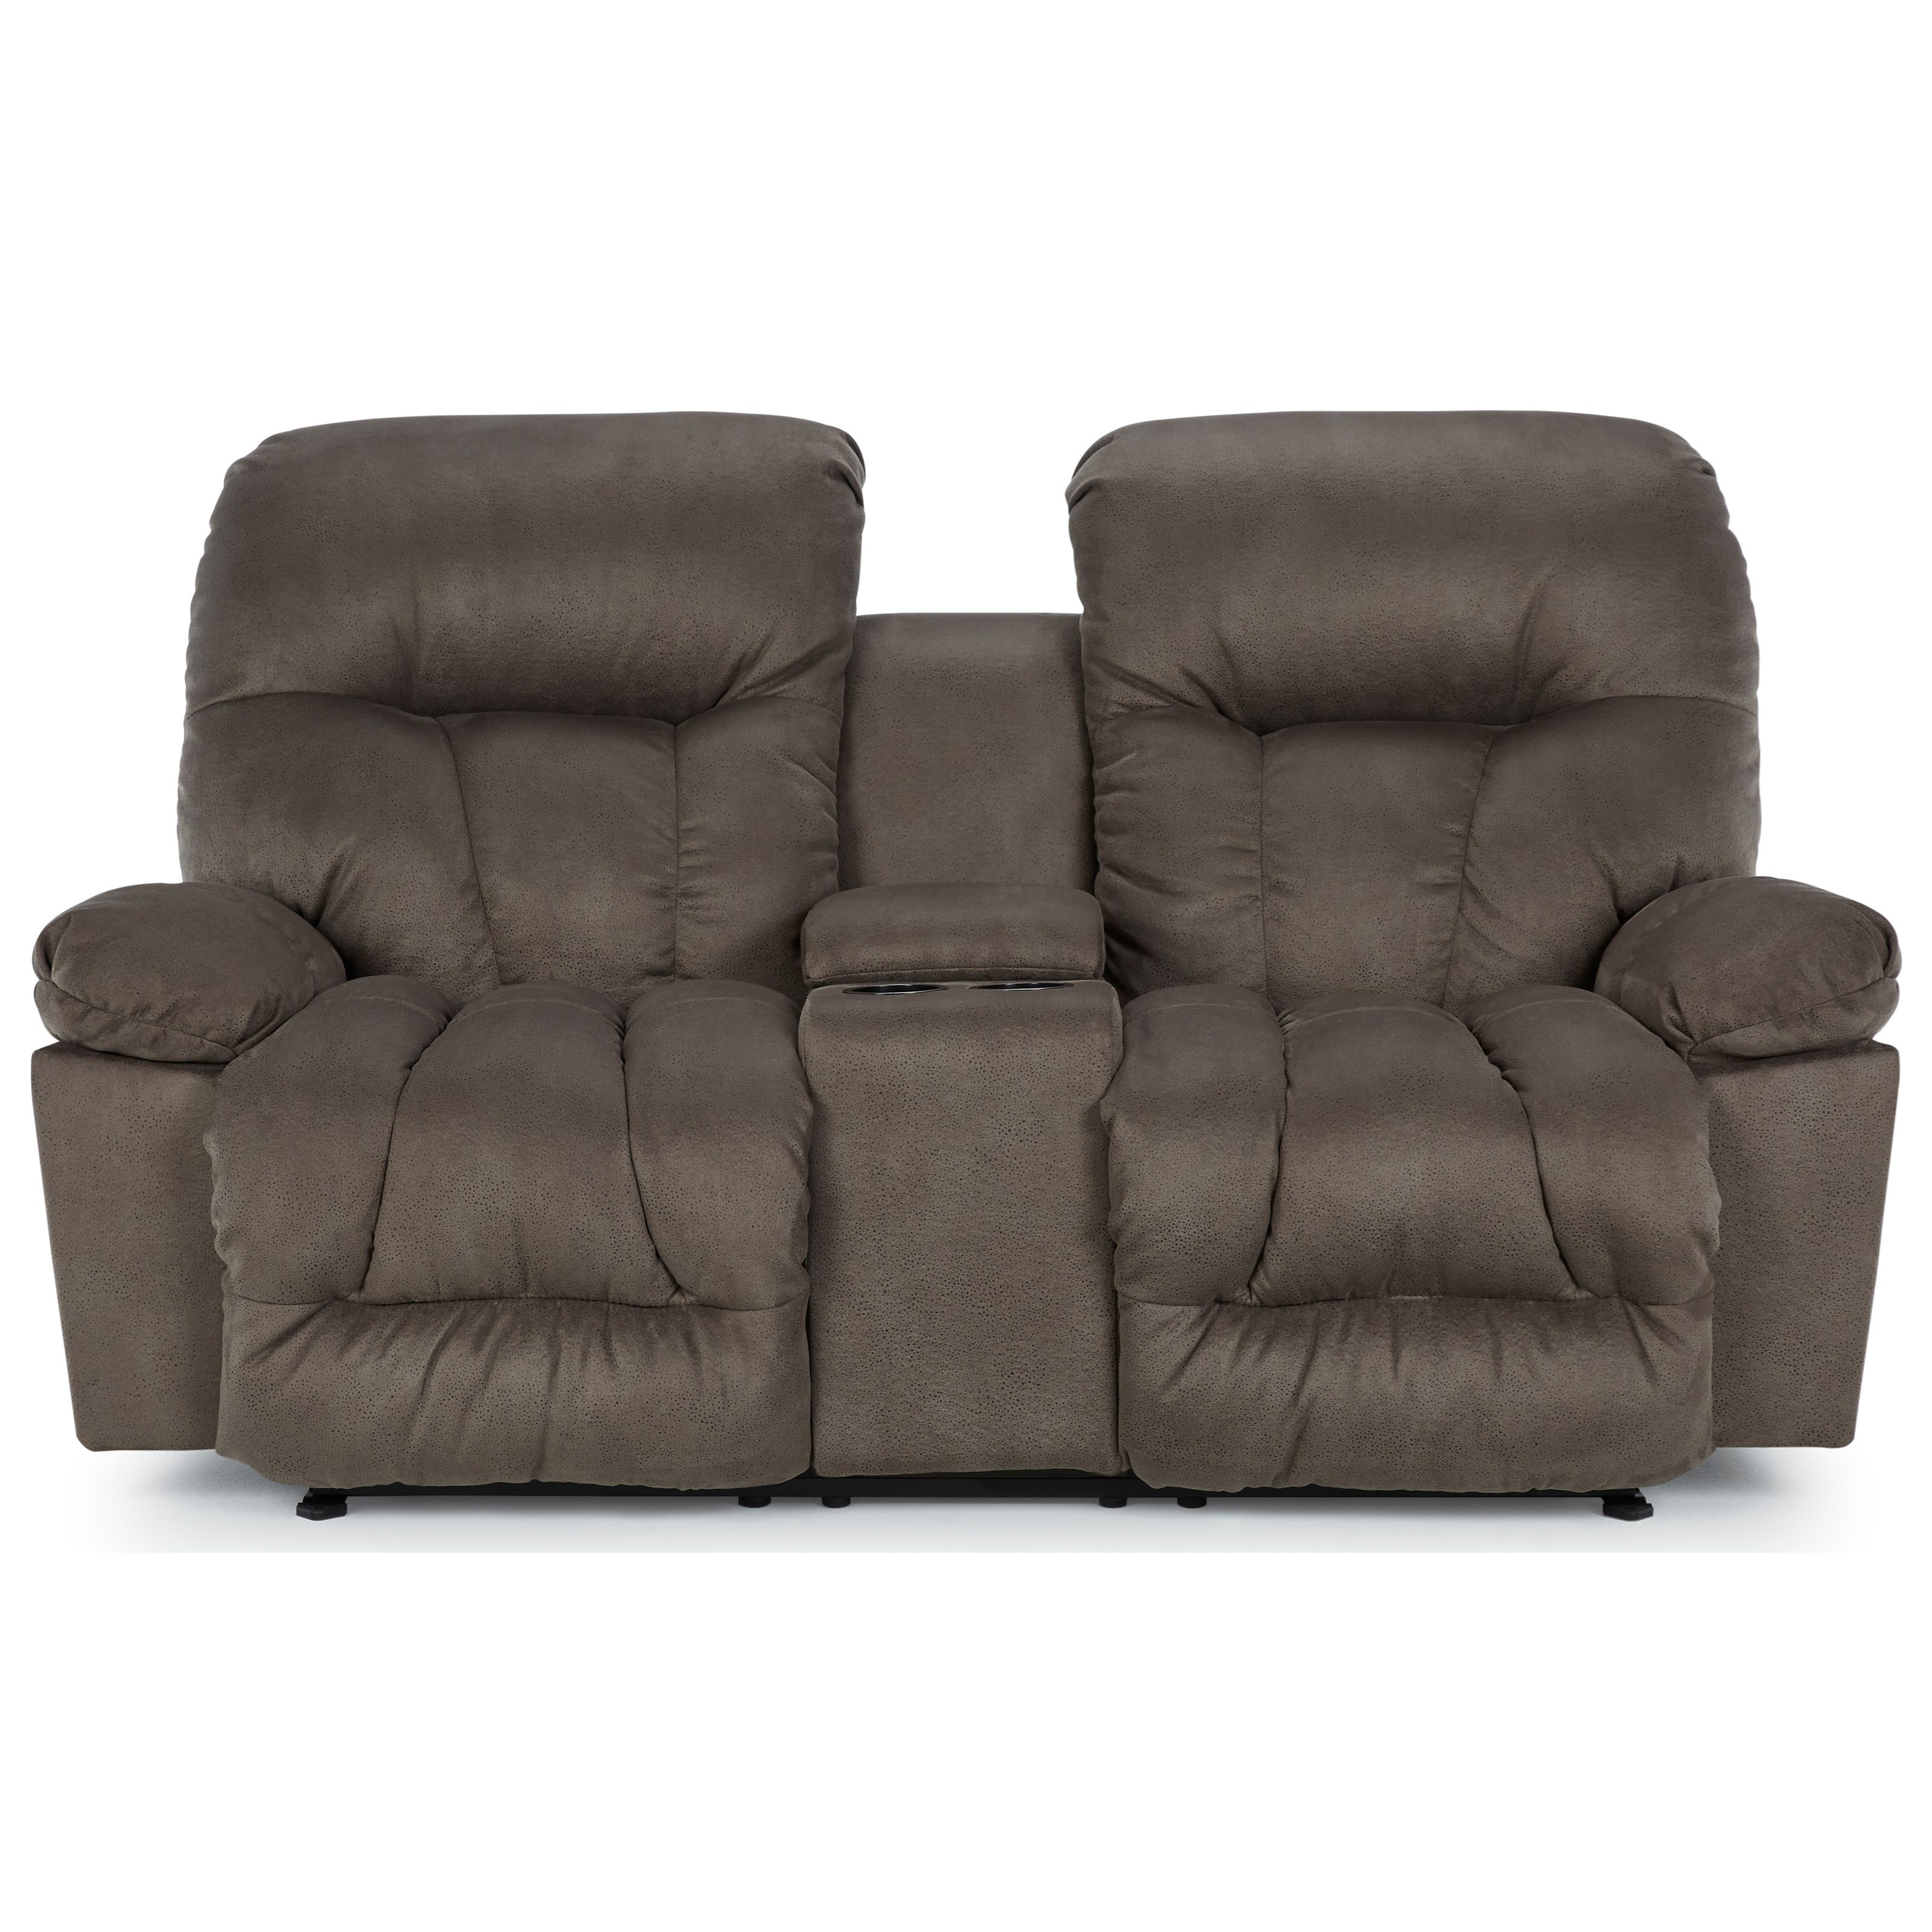 Retreat Power Rocker Recliner Console Loveseat by Best Home Furnishings at Best Home Furnishings